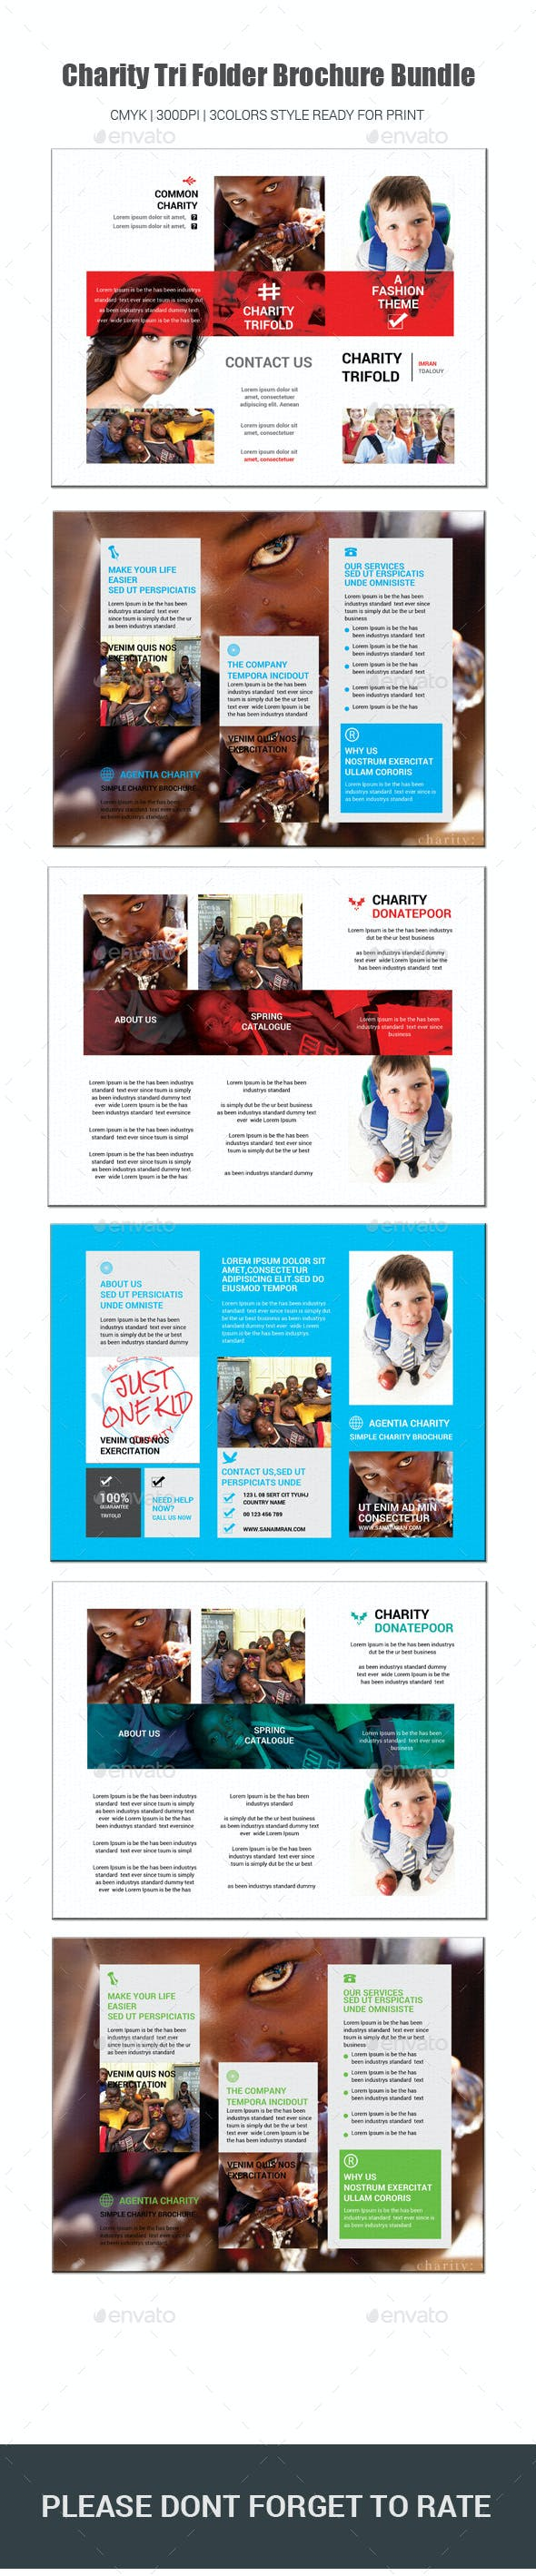 charity tri folder brochure bundle by sanaimran graphicriver